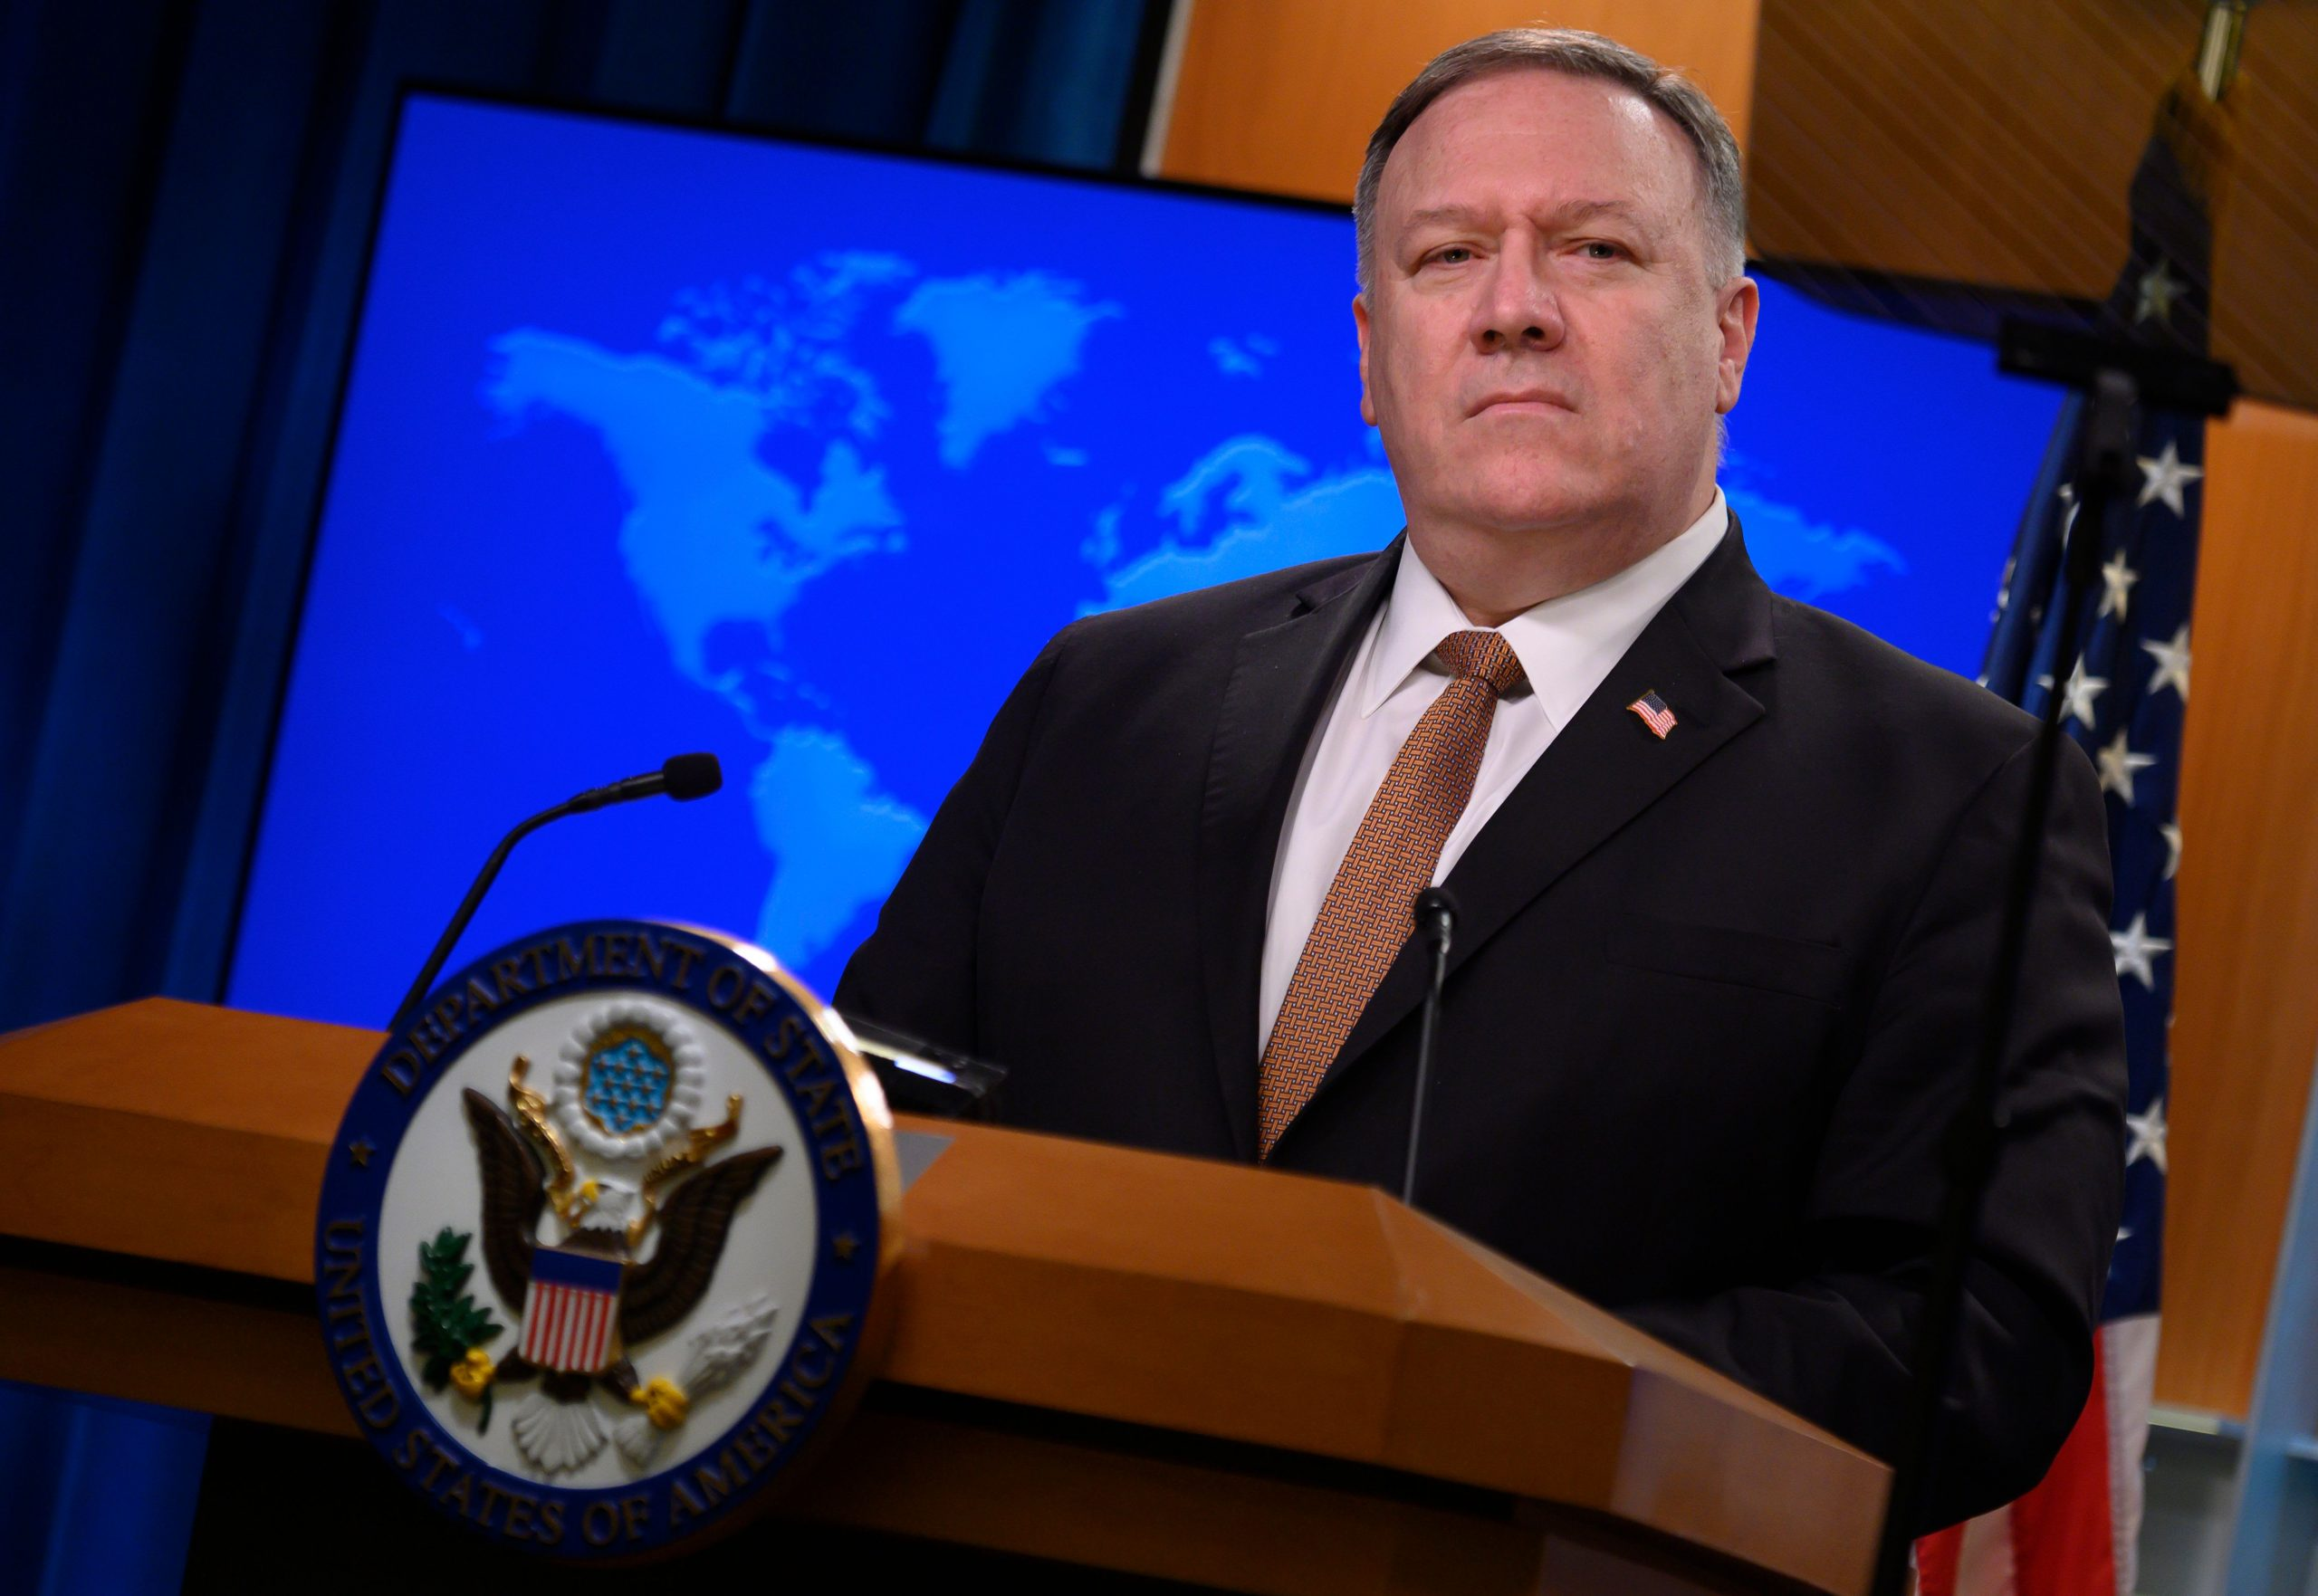 Pompeo's speech will have the 'opposite effect' in China, suggests previous U.S. diplomat